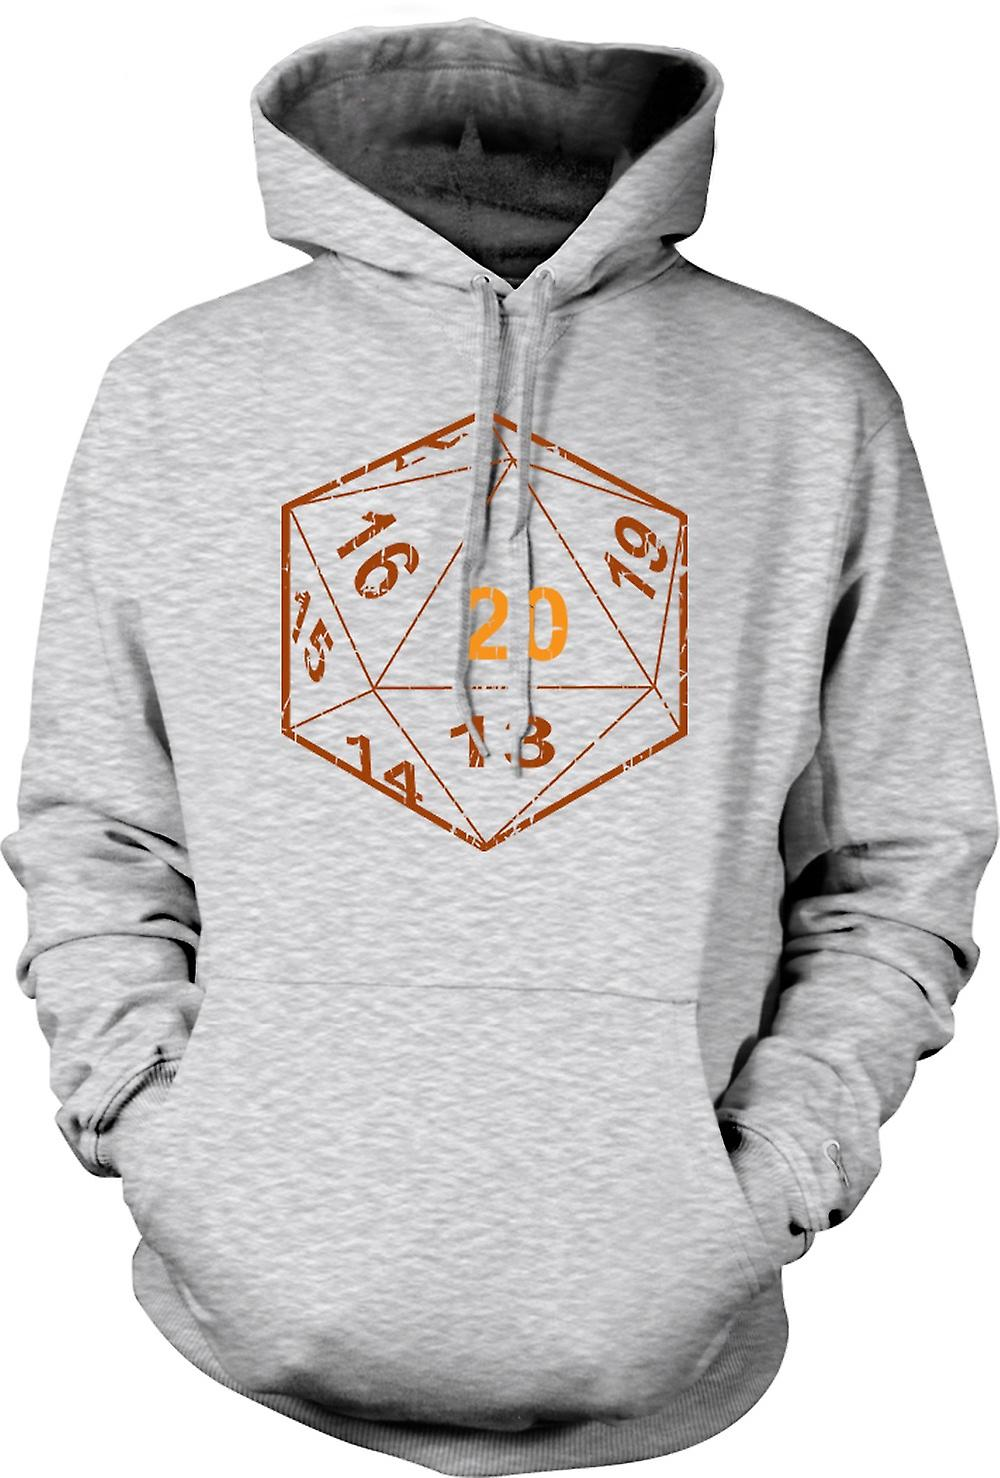 Mens Hoodie - Dungeons And Dragons D20 Dice - Gamer